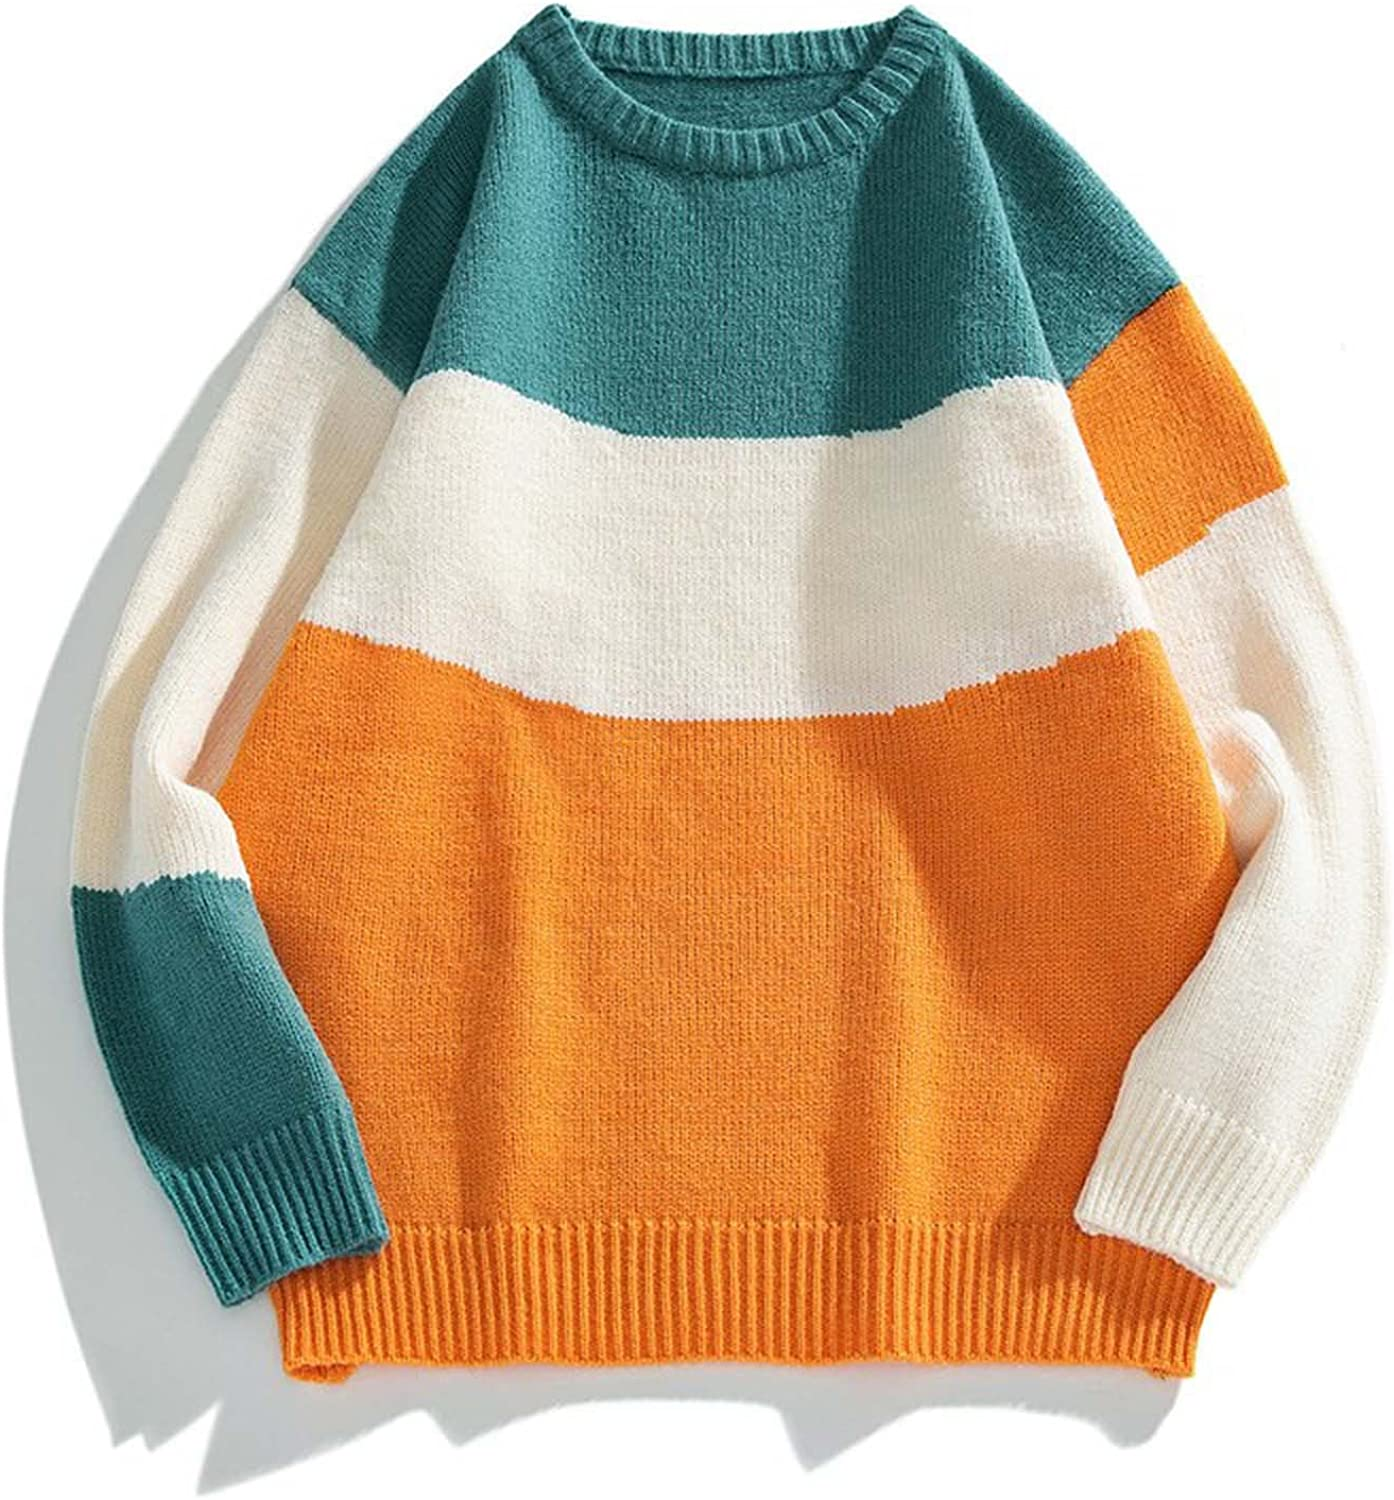 Huangse Men's Autumn Winter Vintage Striped Sweater Color Block Knit Pullover Round Neck Knitted Sweaters